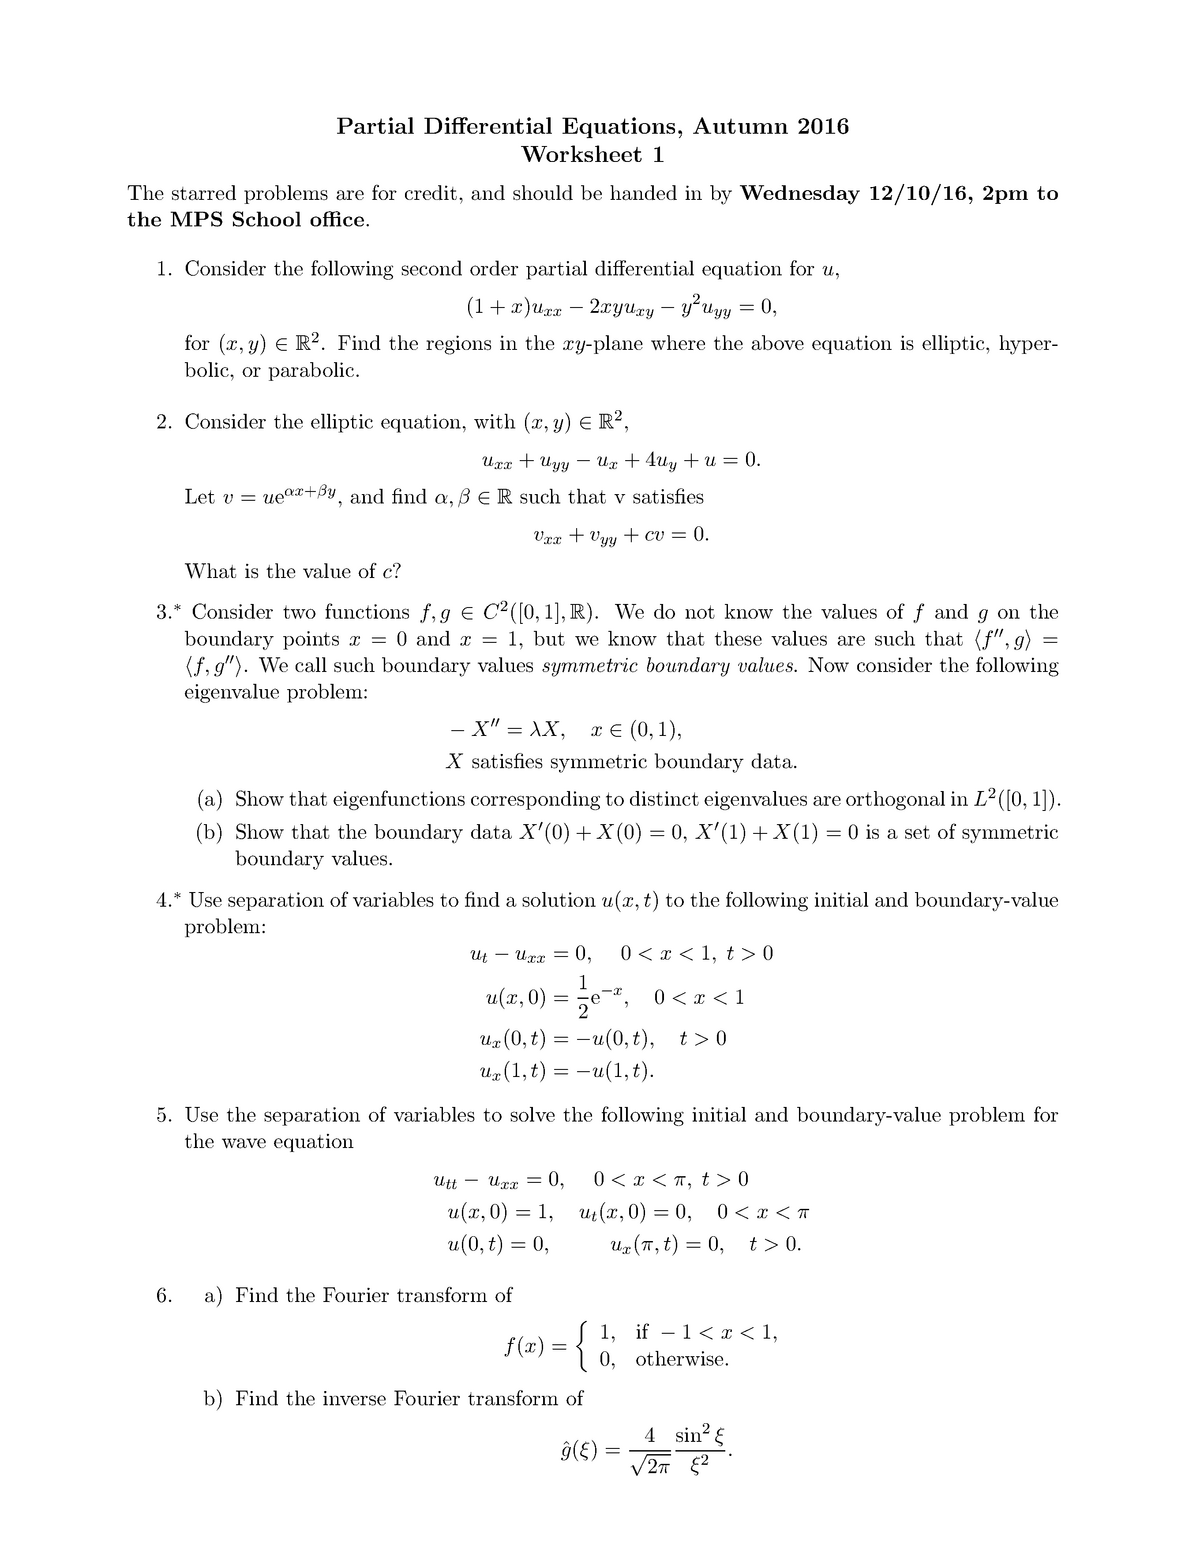 Solving Partial Differential Equations